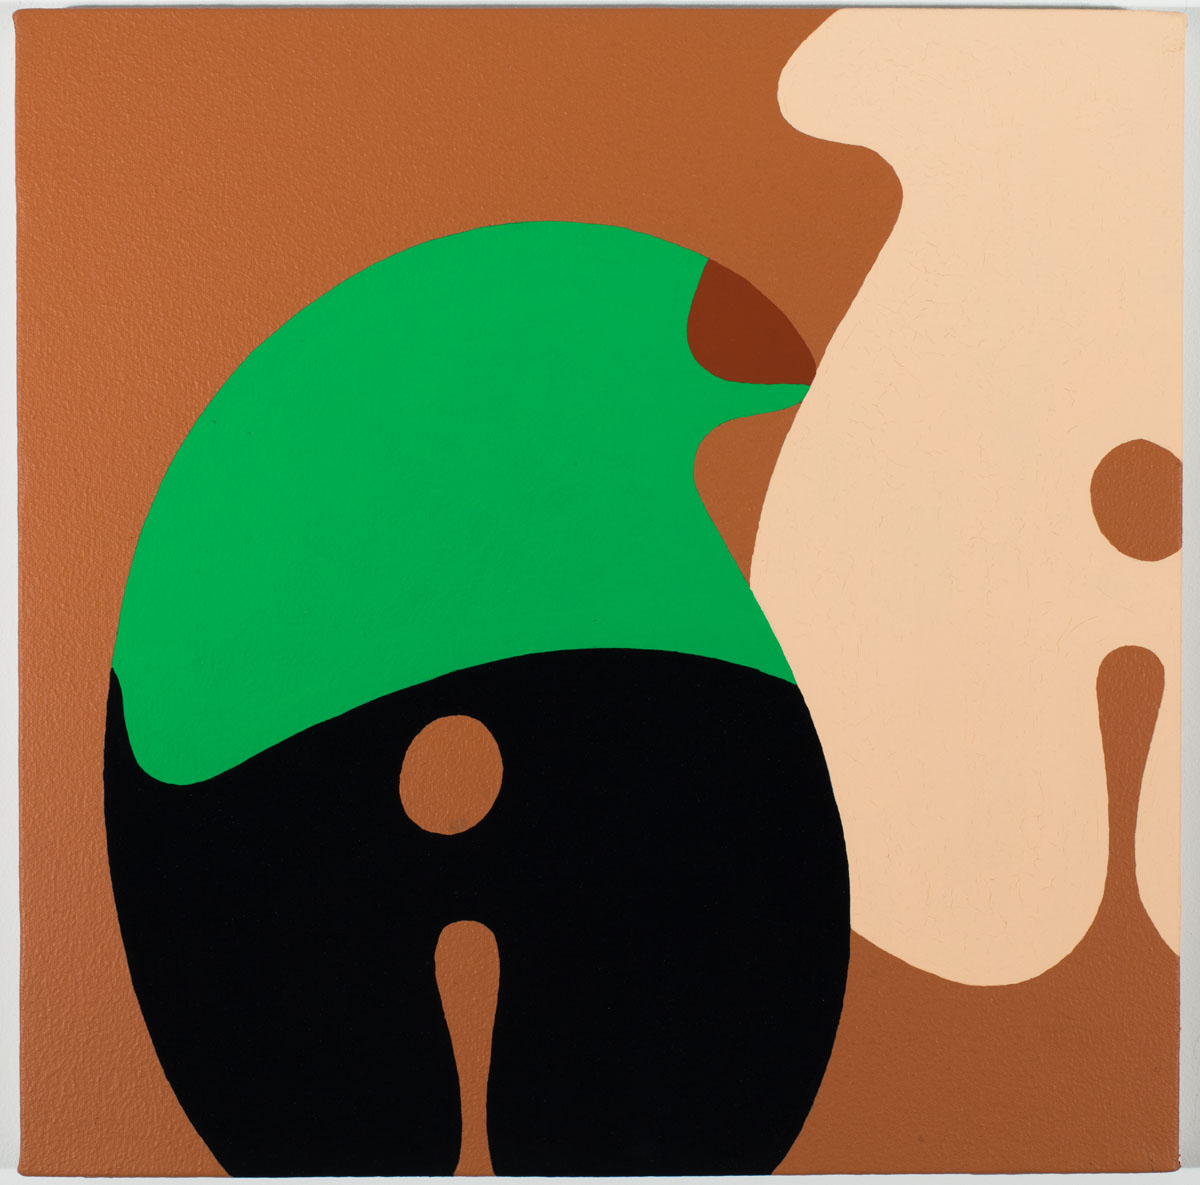 Tisch Abelow.  Untitled . Gouache and house paint on canvas. 16 inches x 16 inches. 2012.